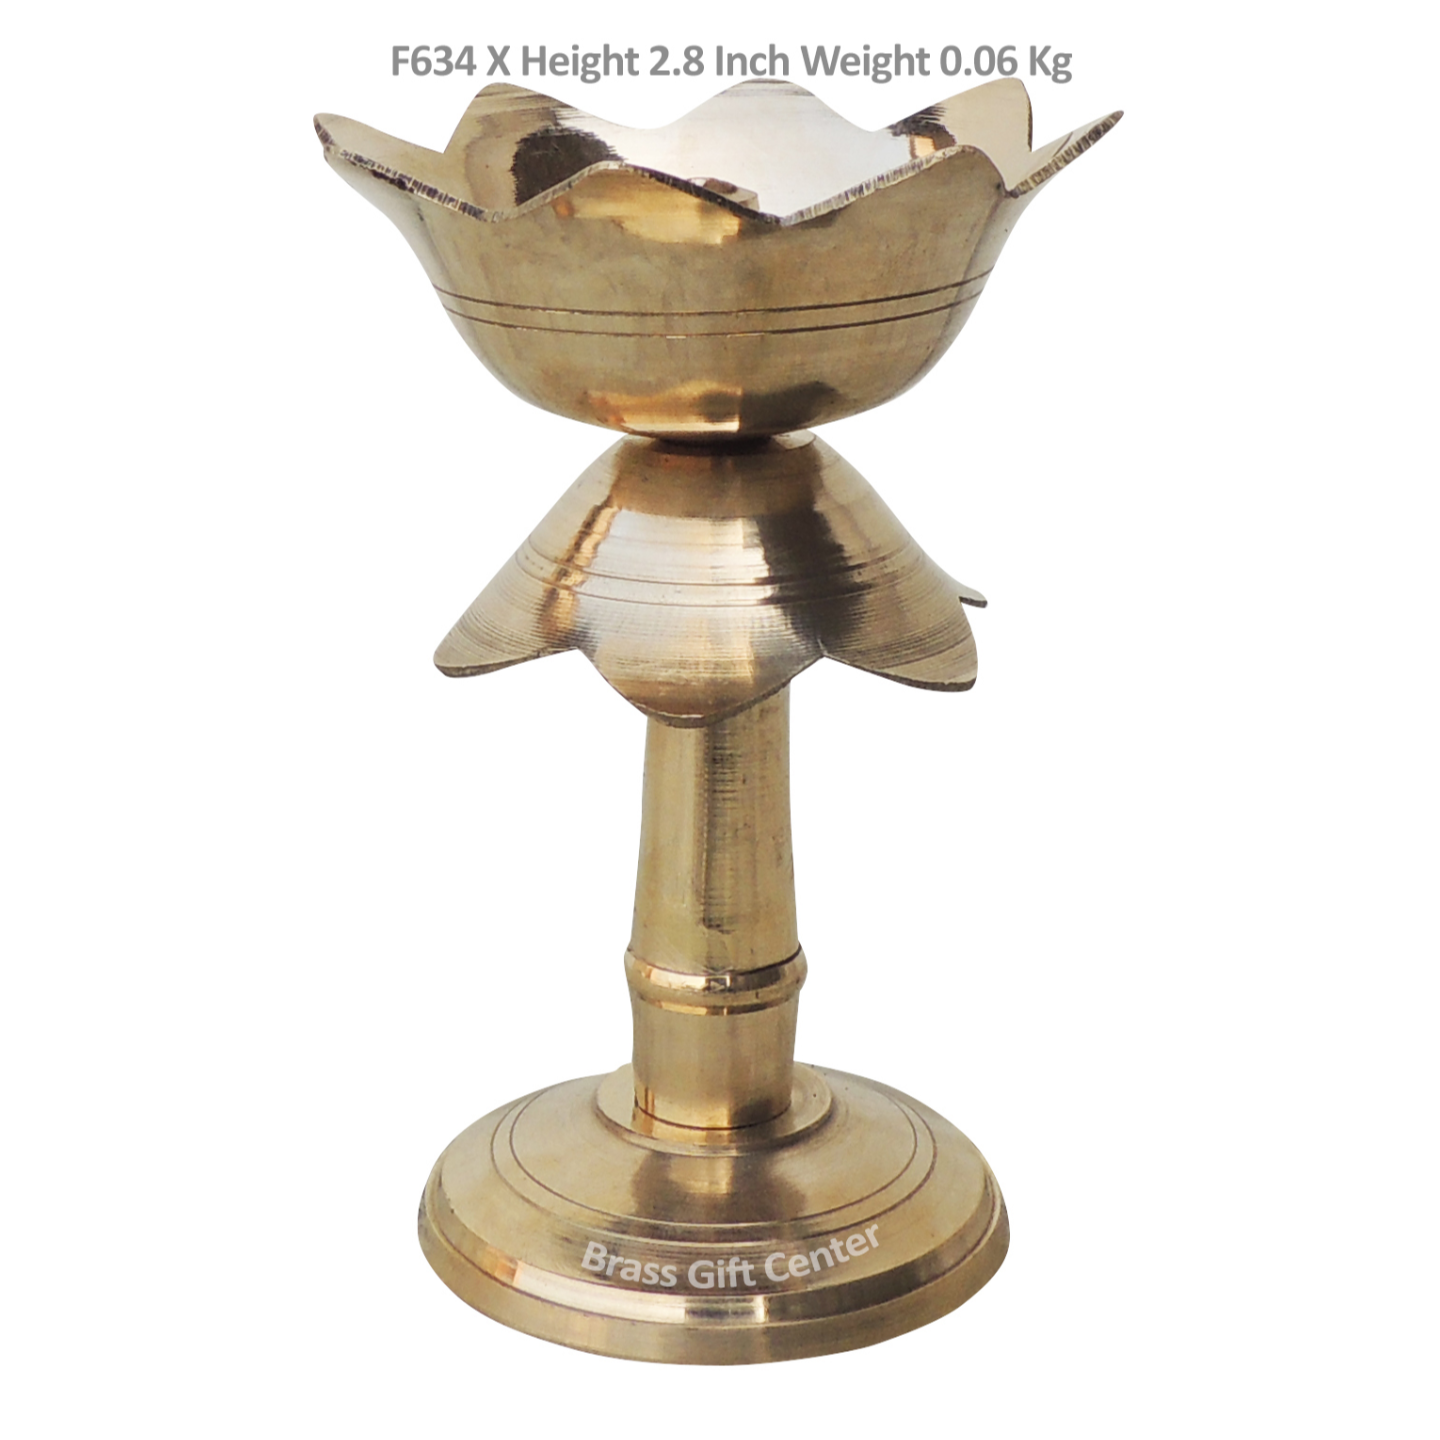 Brass Lotus Shape Deepak With Stand - 2.8 Inch F634 X